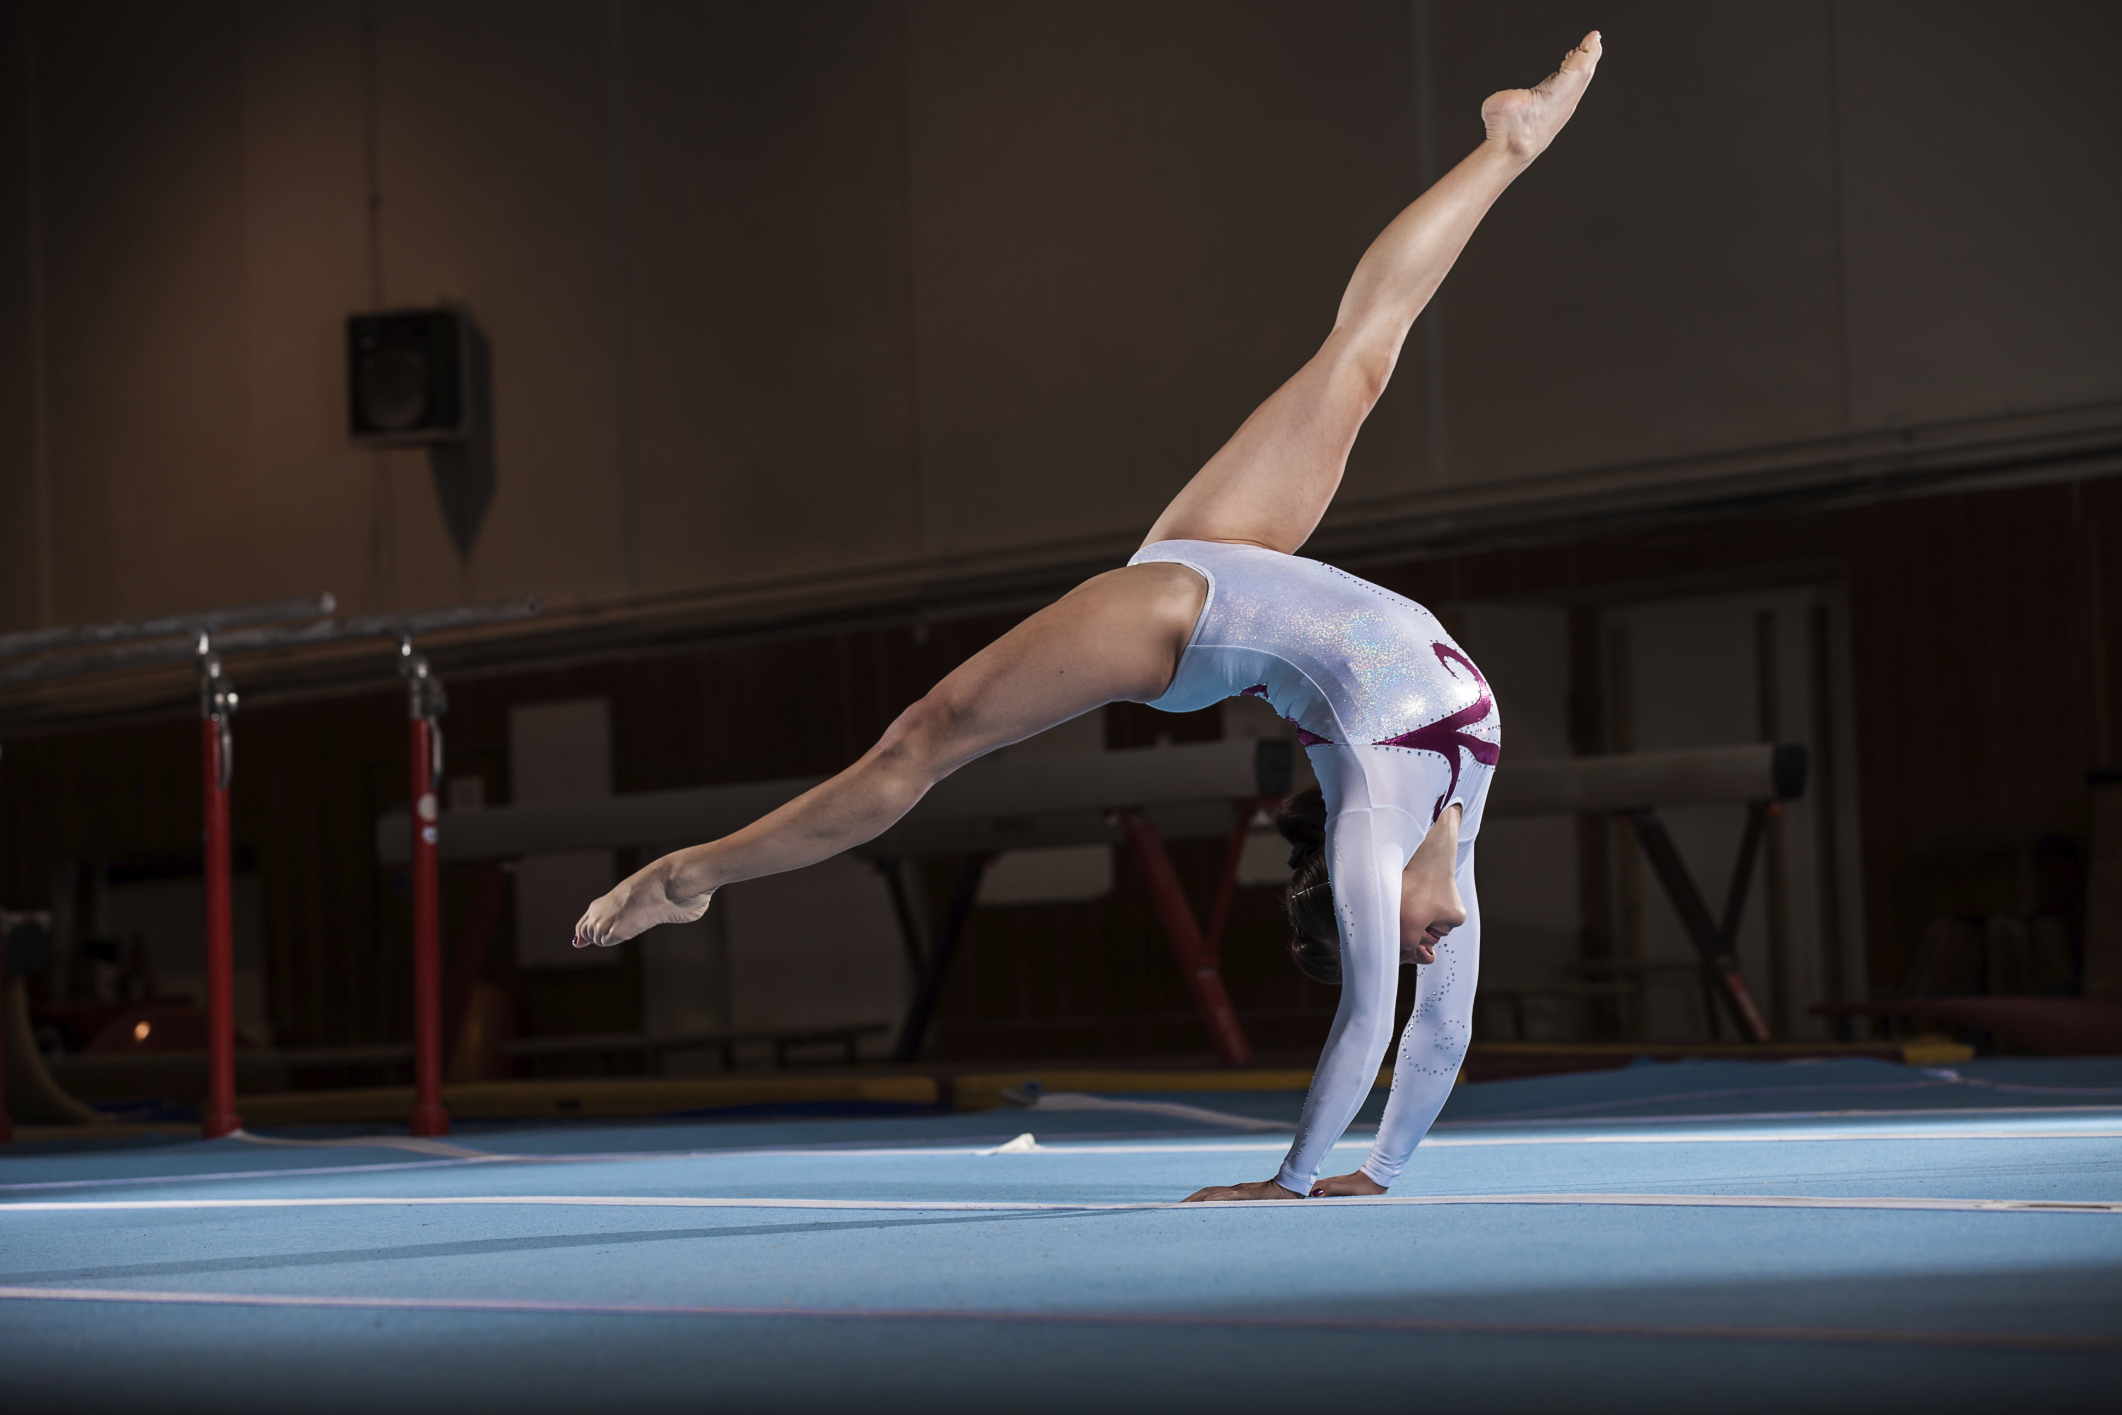 Rules for Gymnastics Floor Work